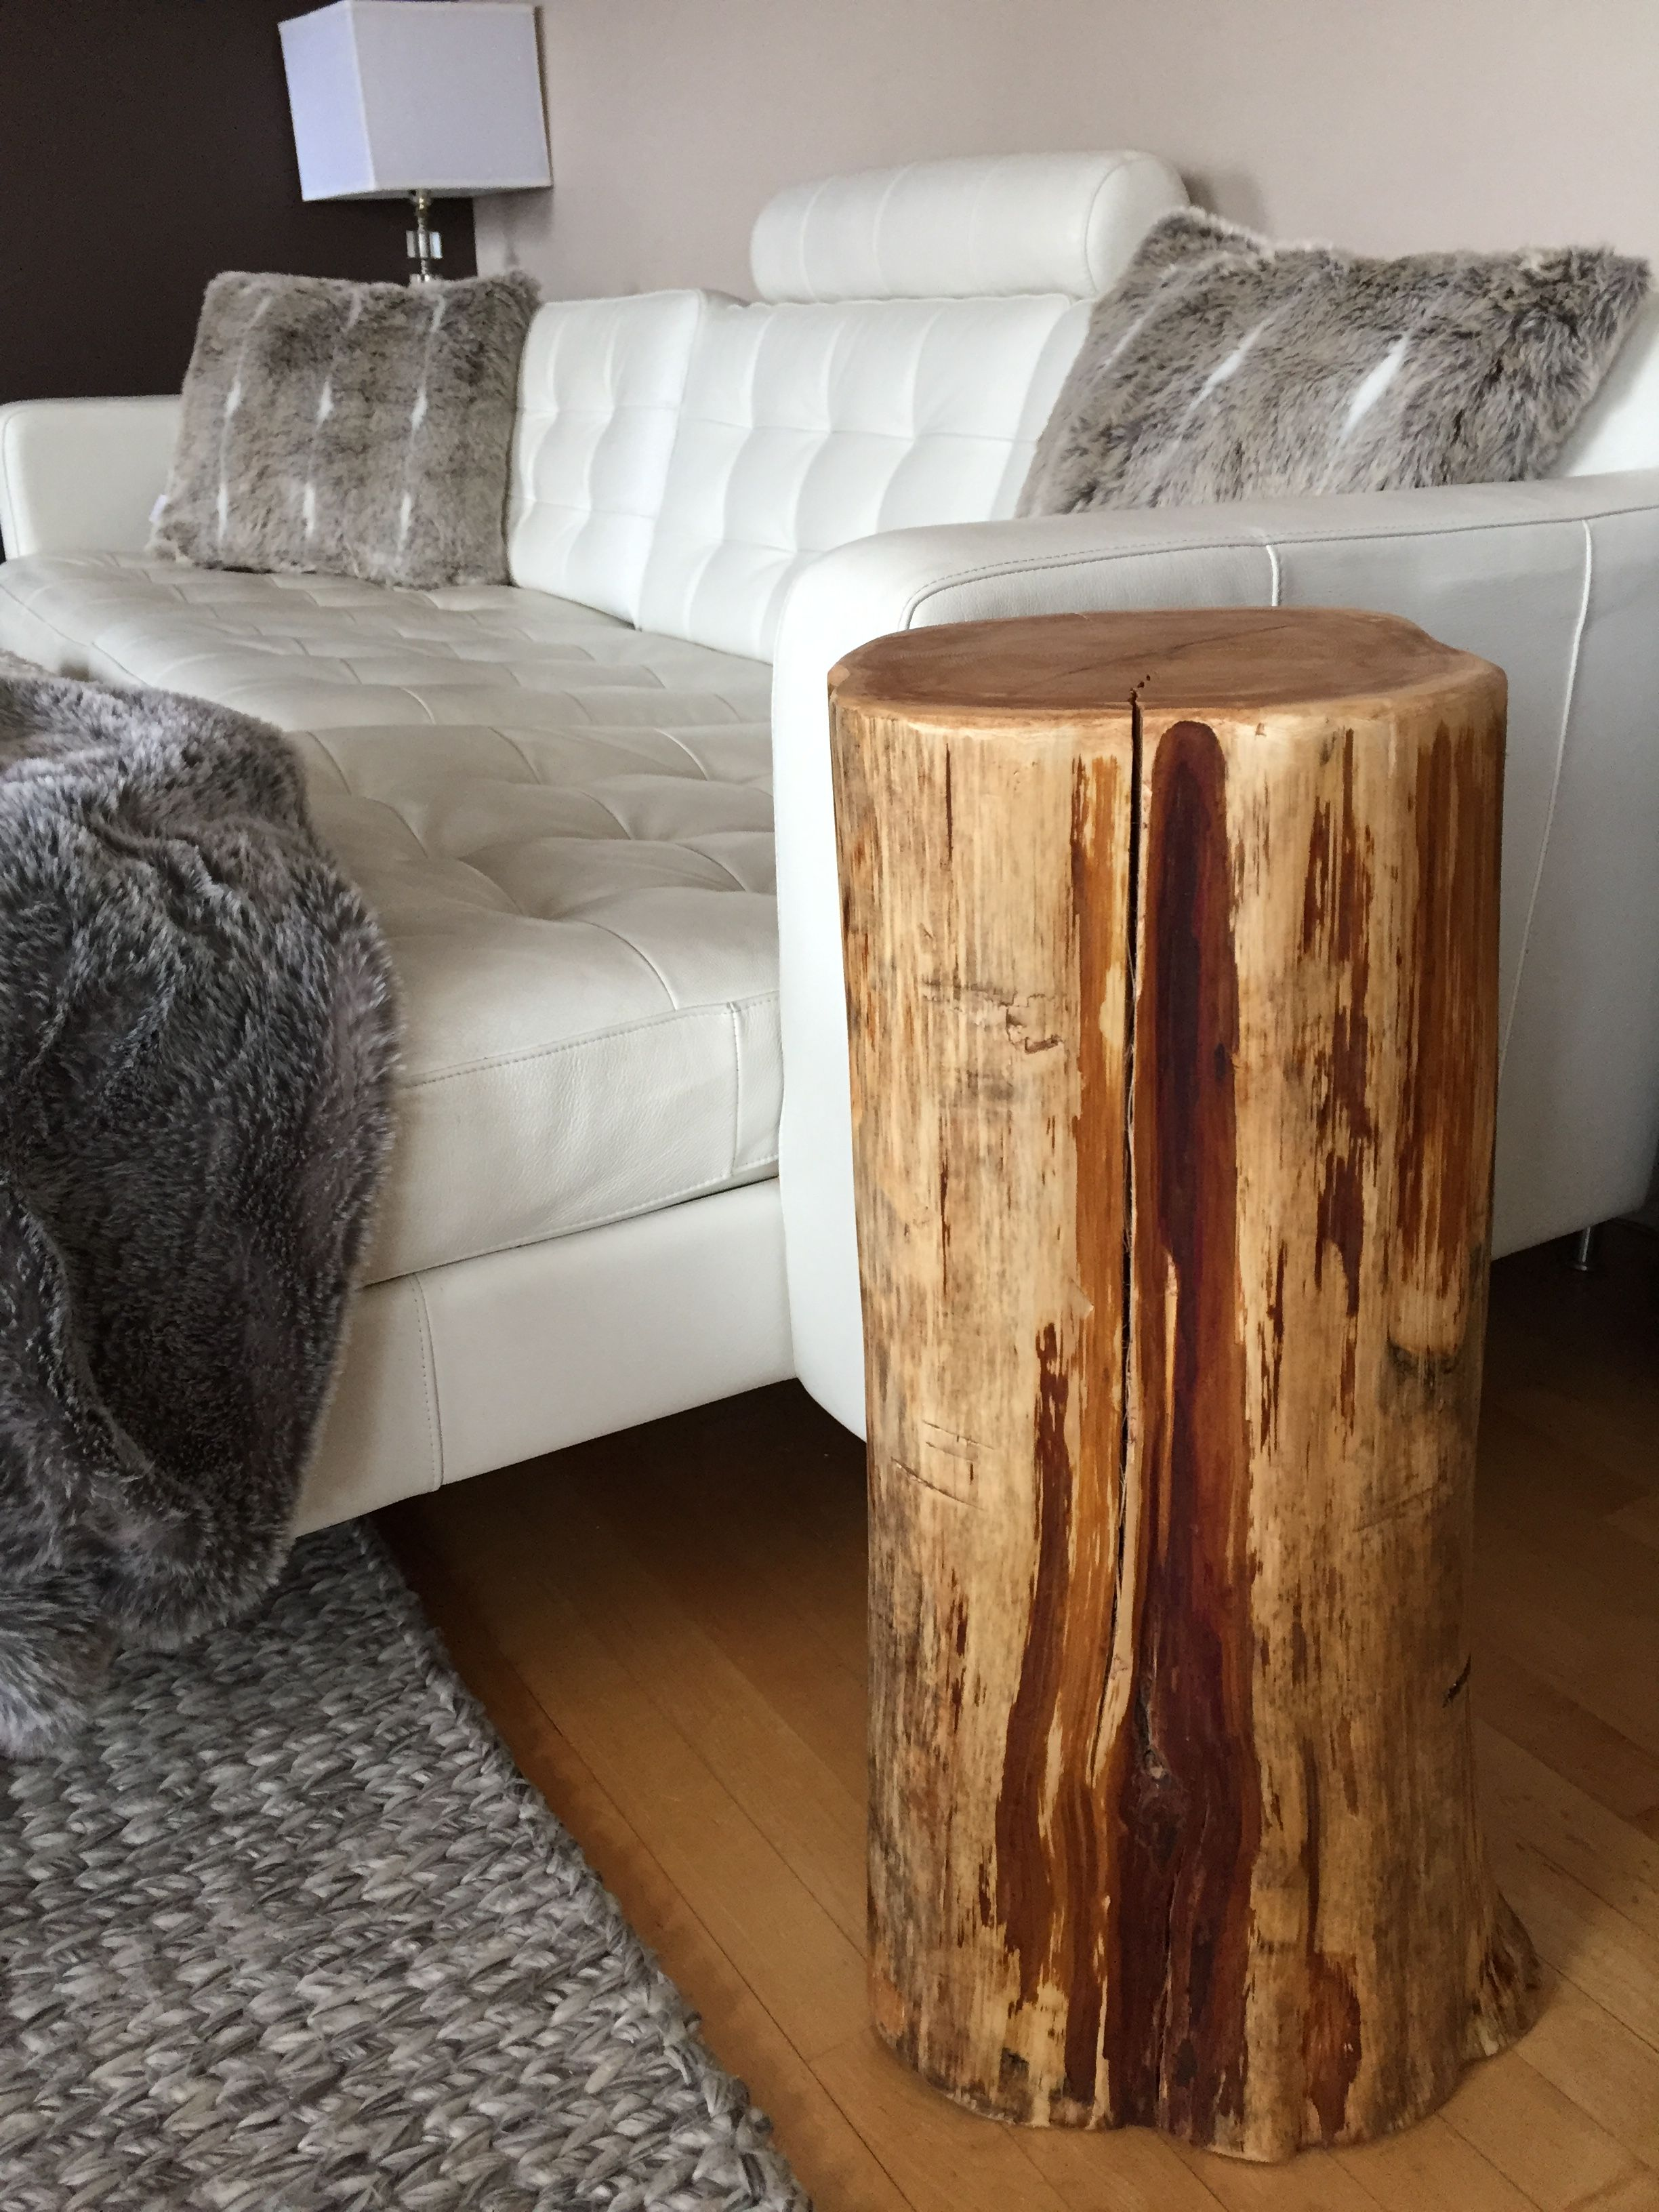 Stump End Table Tall Stump End Table Tree Trunk Table For Bedside Stump Table Wood Table Design Tree Stump Table